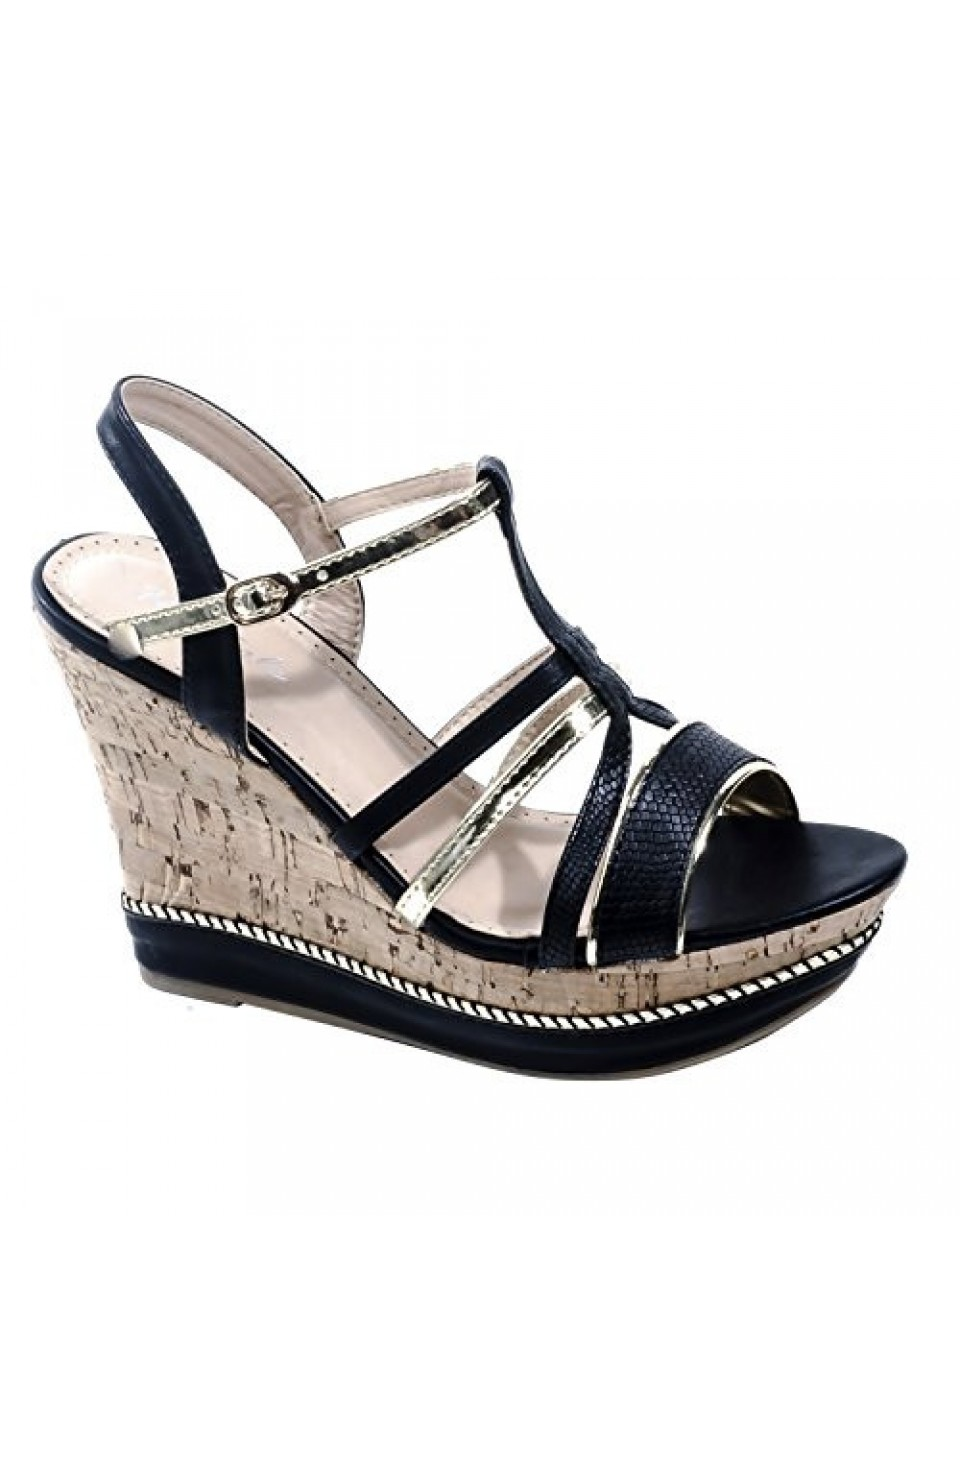 Women's Black Gold Manmade Varcitty 5-inch Wedge Sandal with Gleaming Metallic Straps